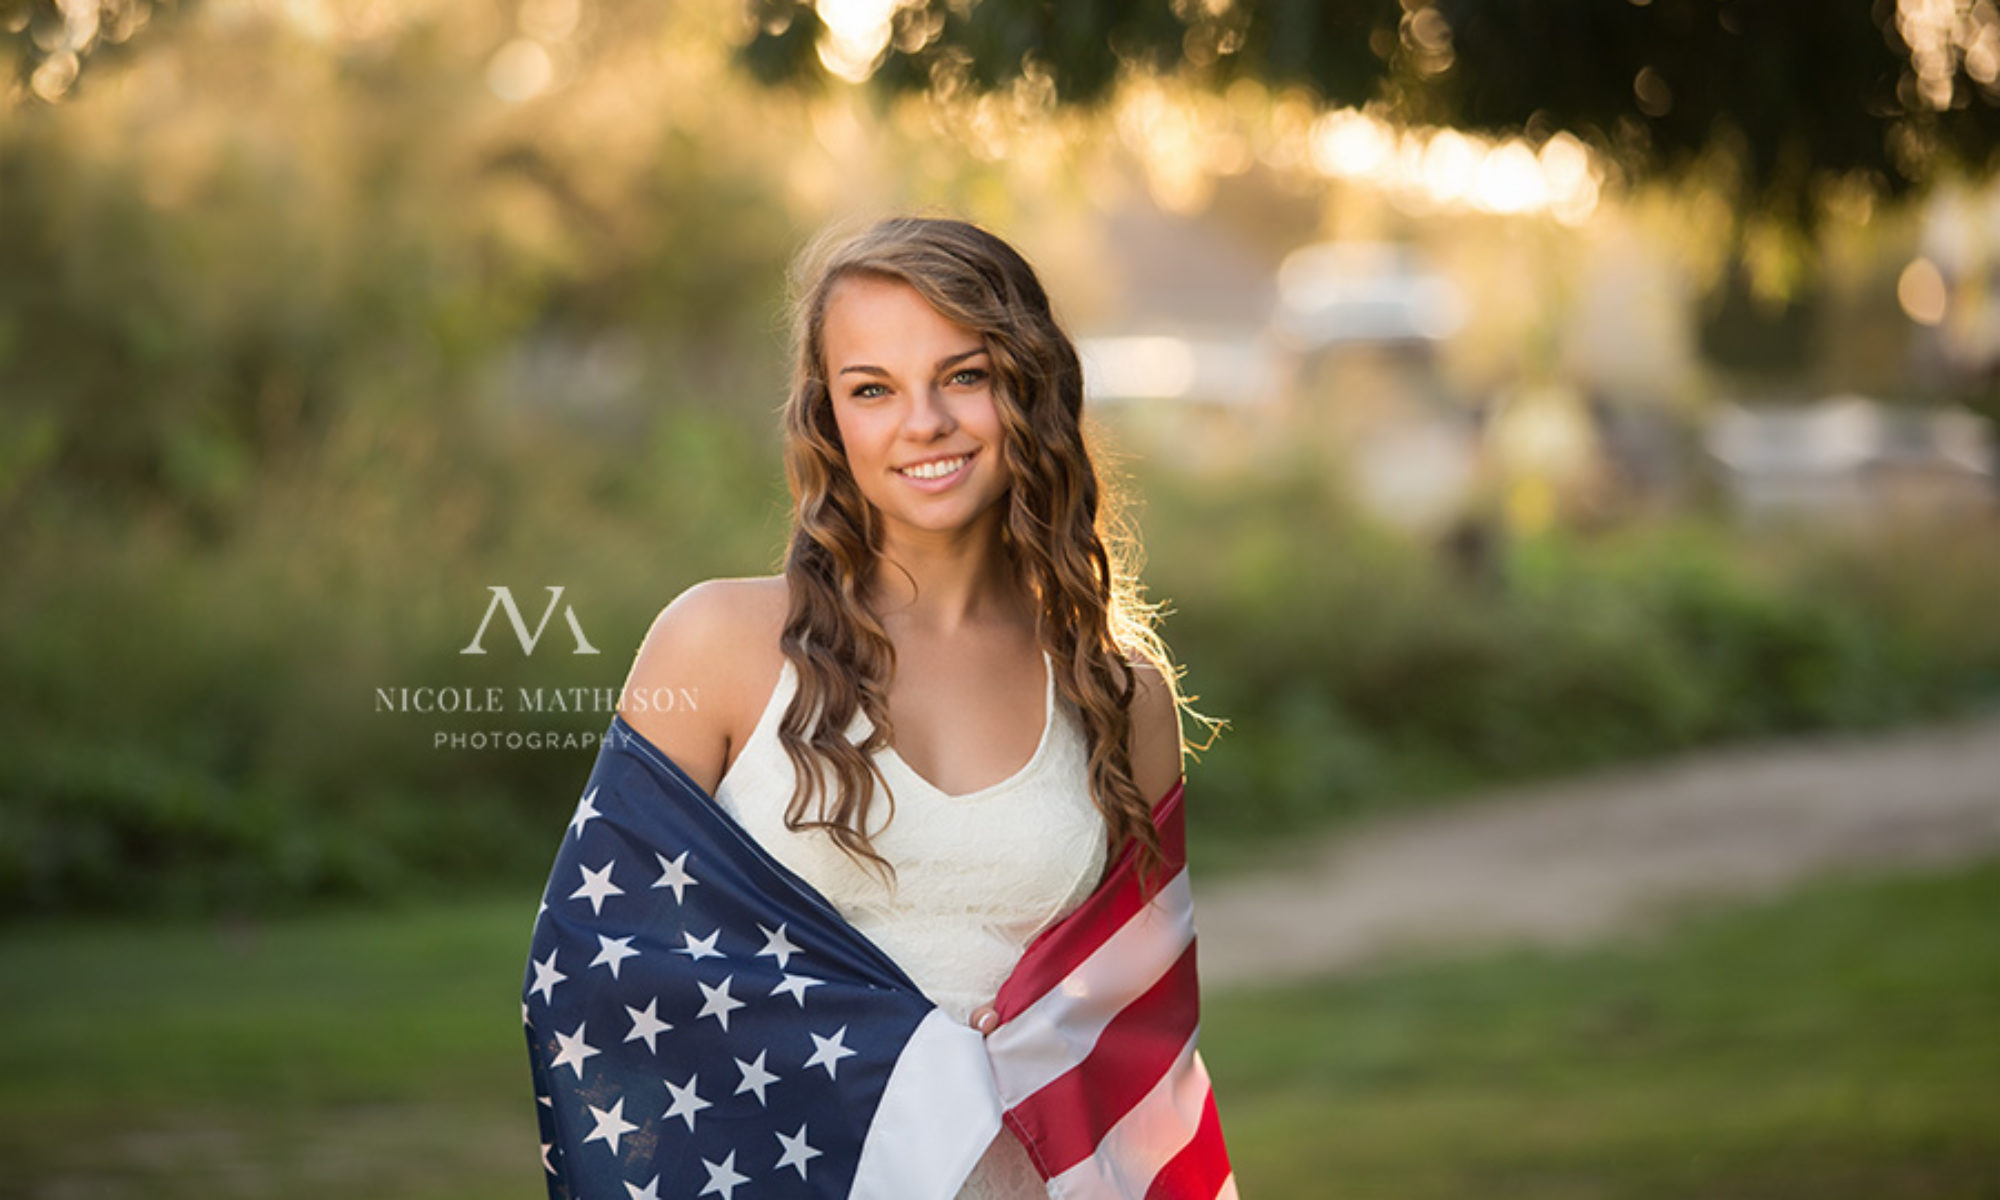 Rochester and Southeastern MN Custom Senior Portrait Photography | Newborn-Family Photographer